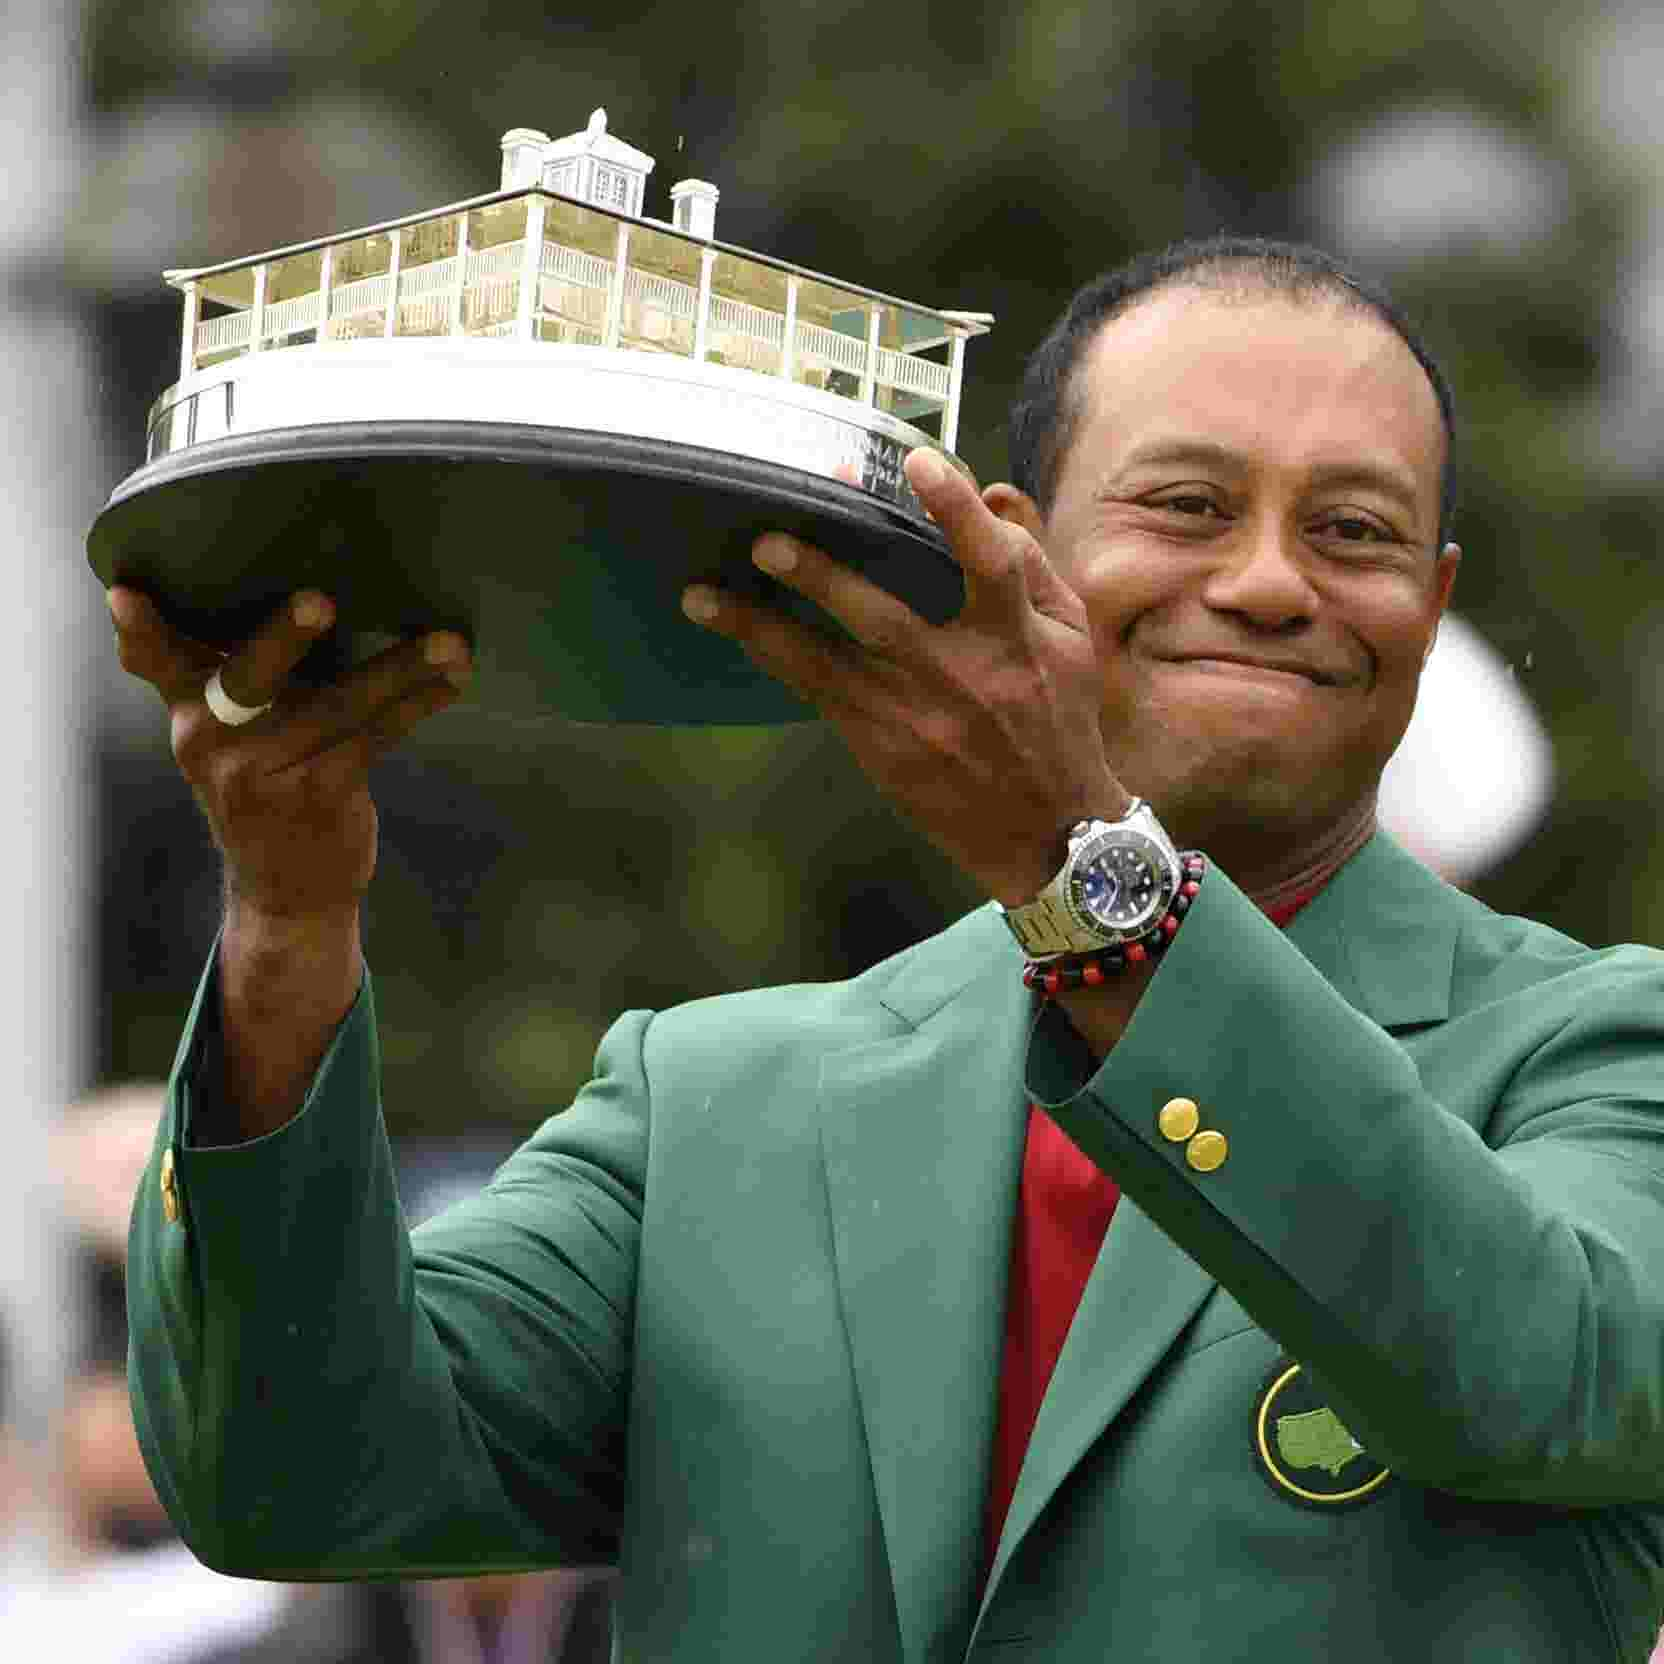 Amanda Redington tiger woods wins the masters, while cbs masters hyperbole